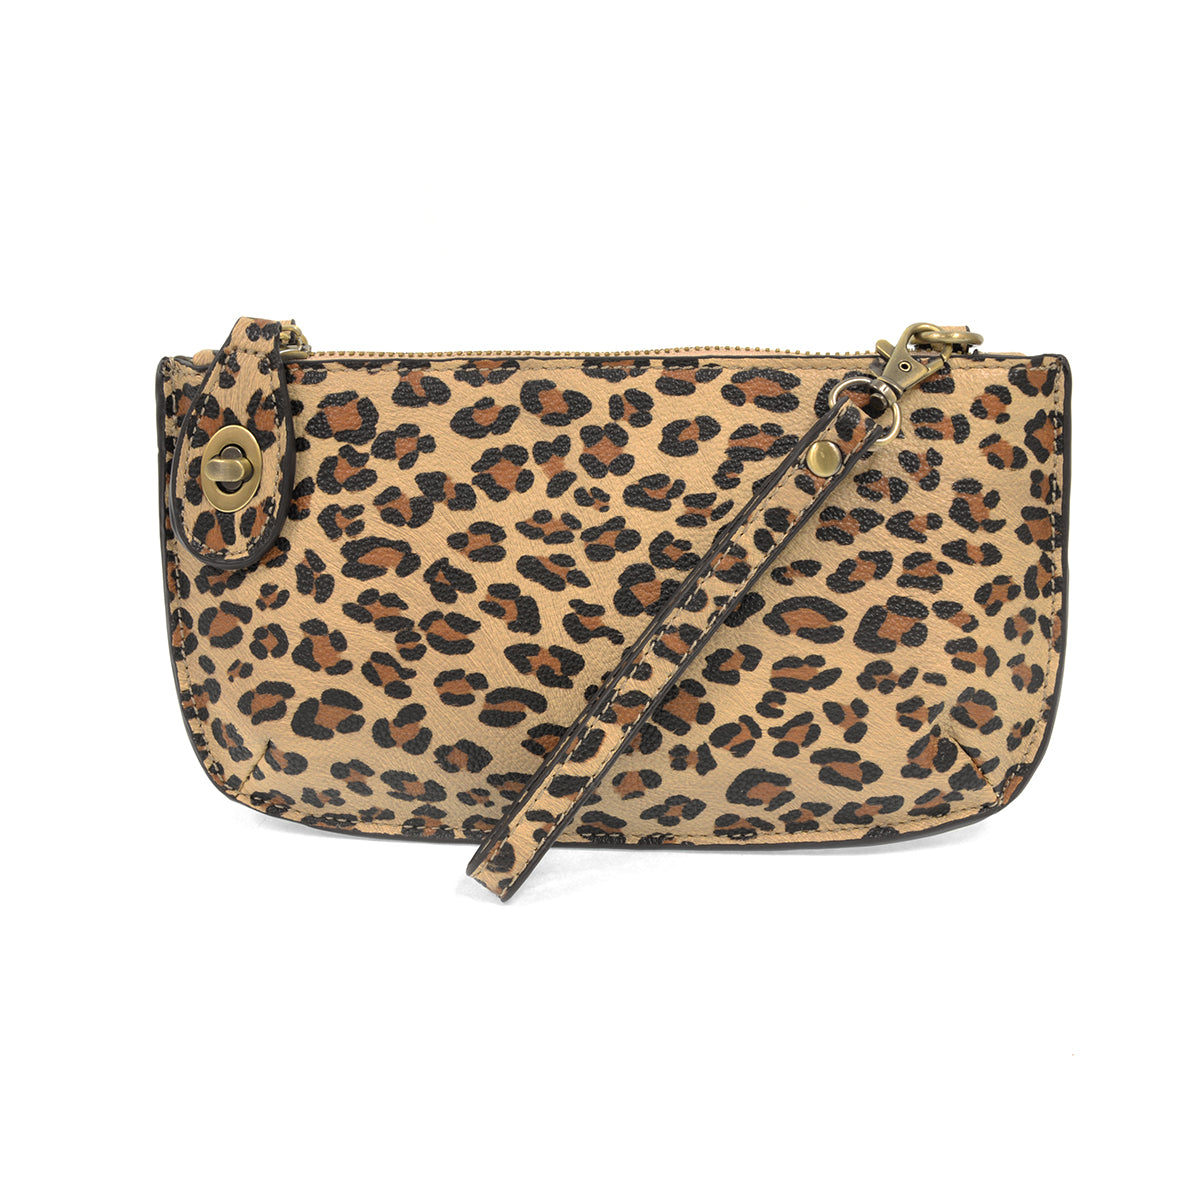 5-in-1 Turnlock Mini Bag - Leopard